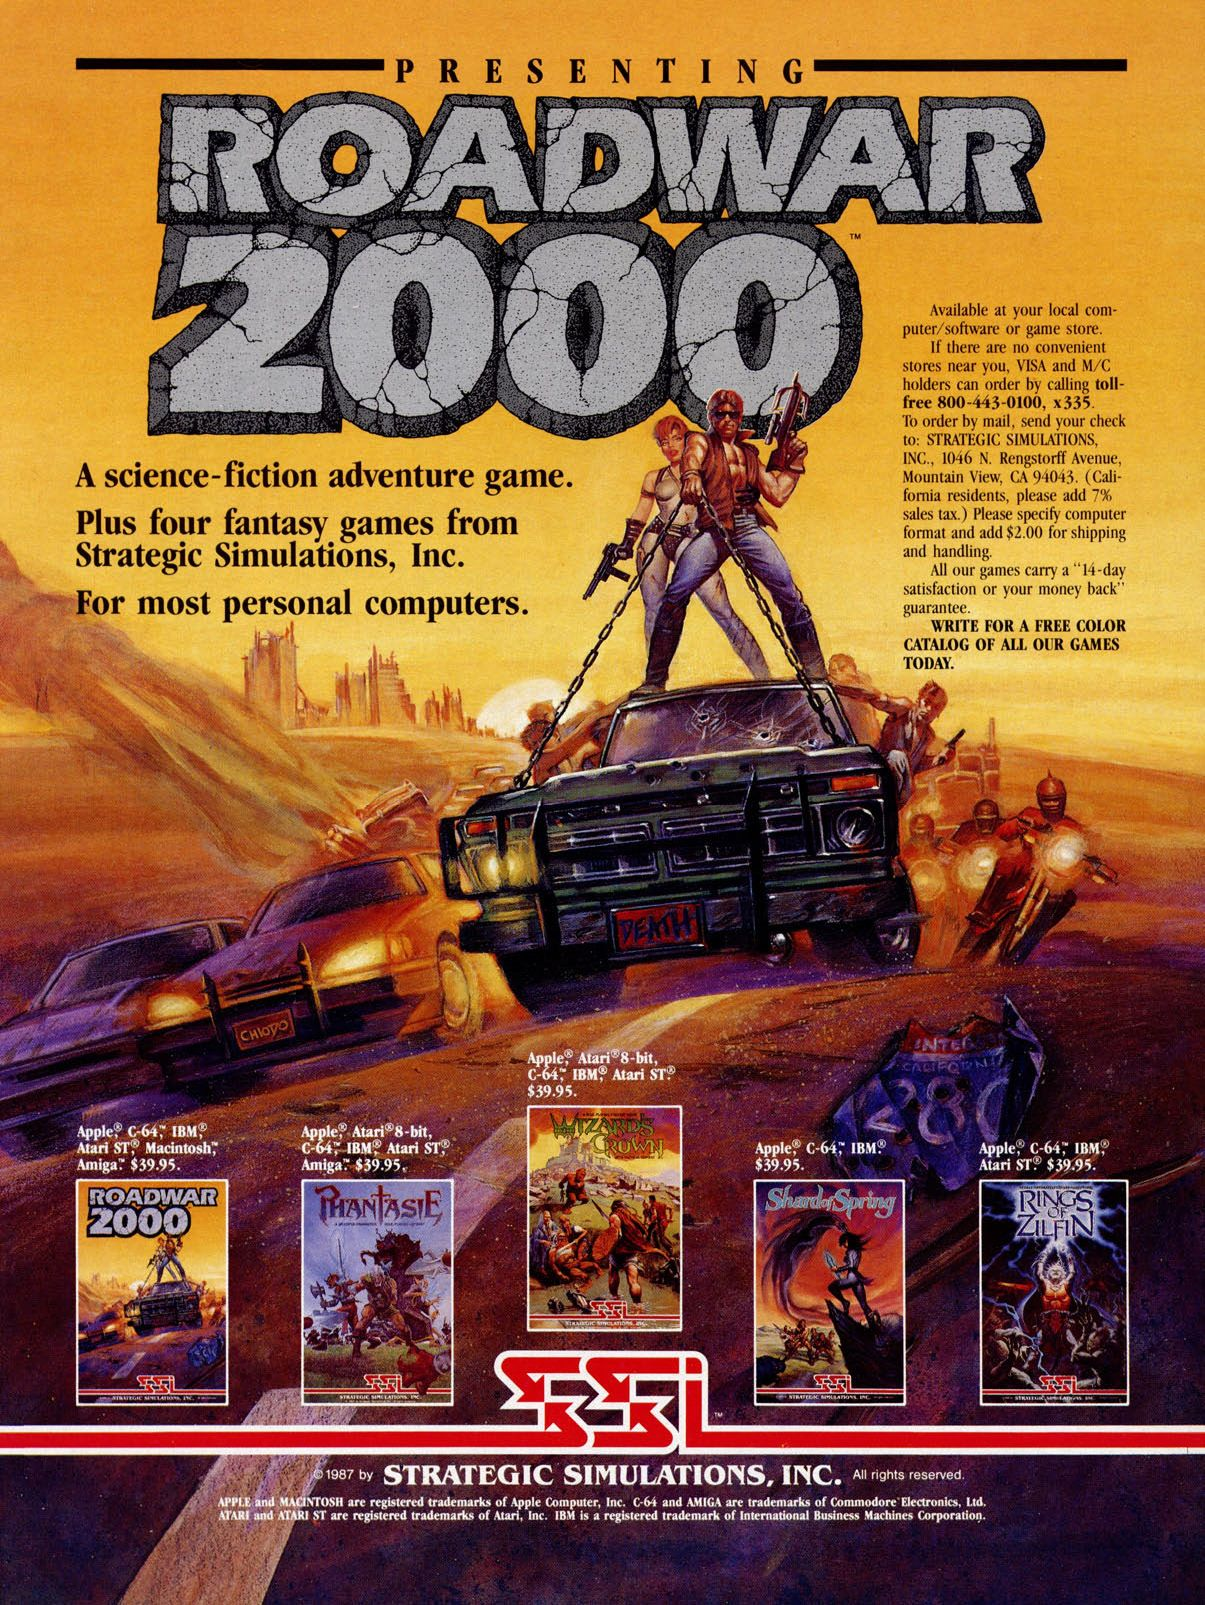 OLD VIDEO GAME ADVERTISEMENTS Photo History of video